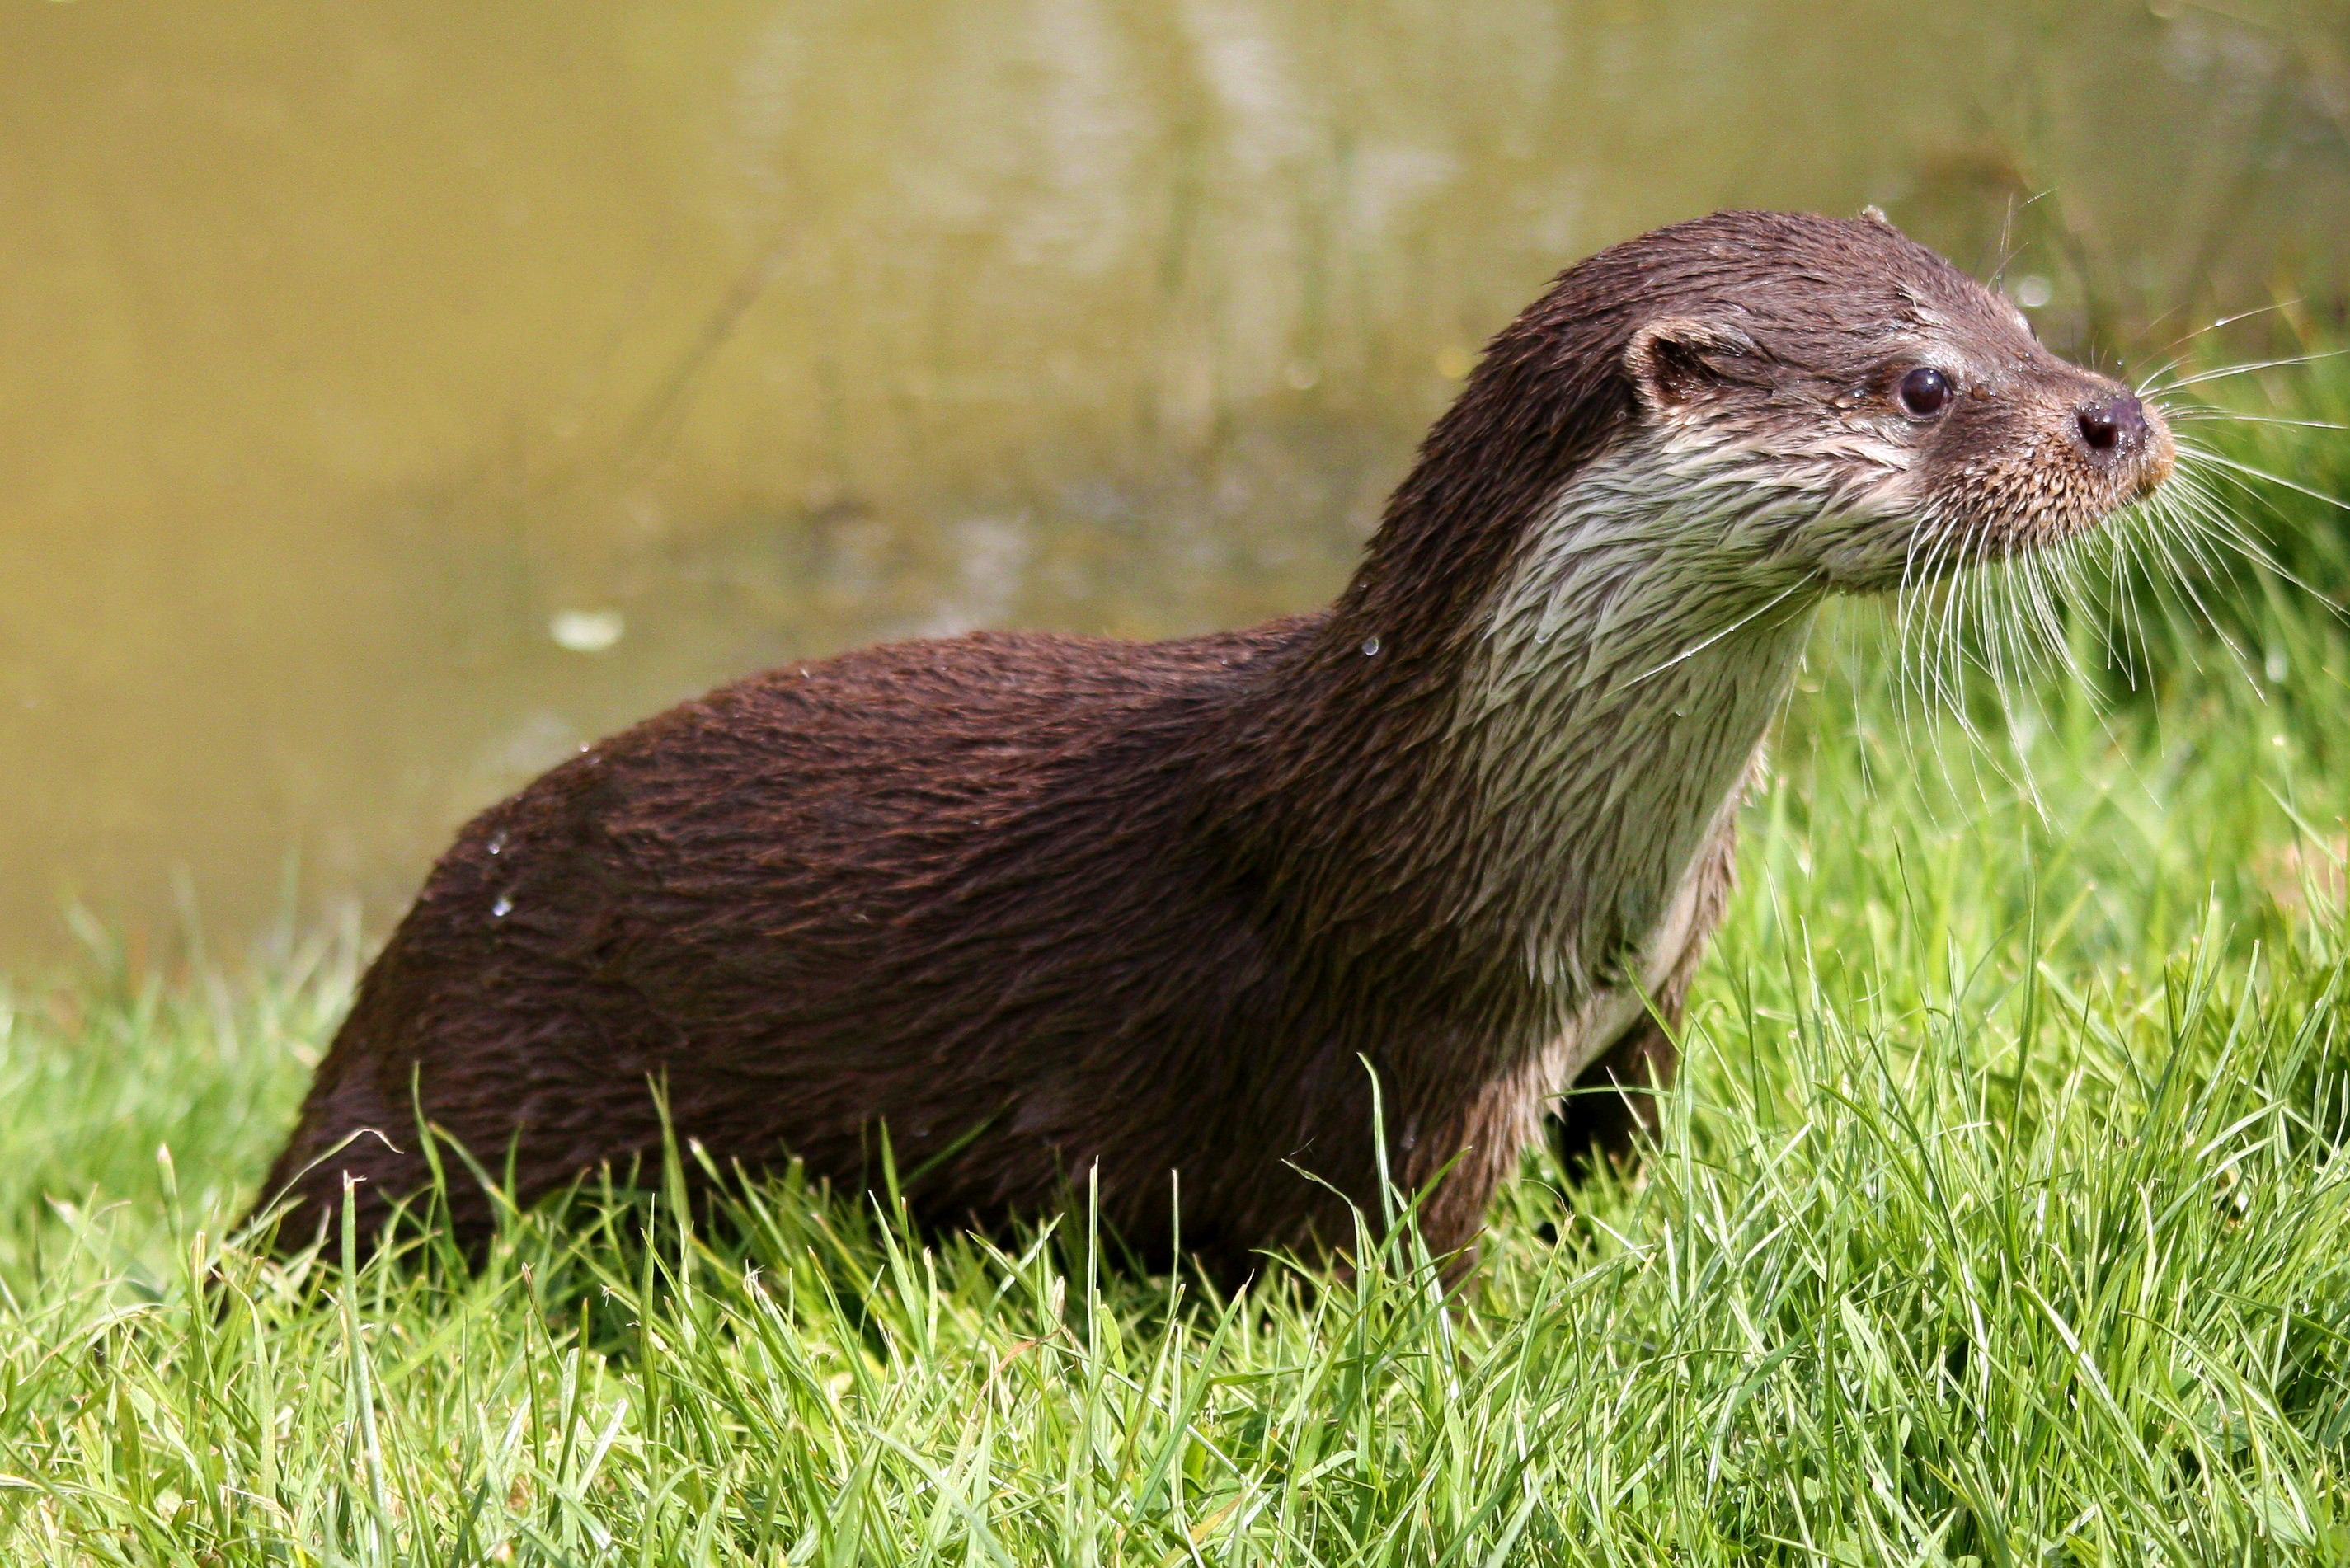 otter_wet_grass_112968_2850x1902